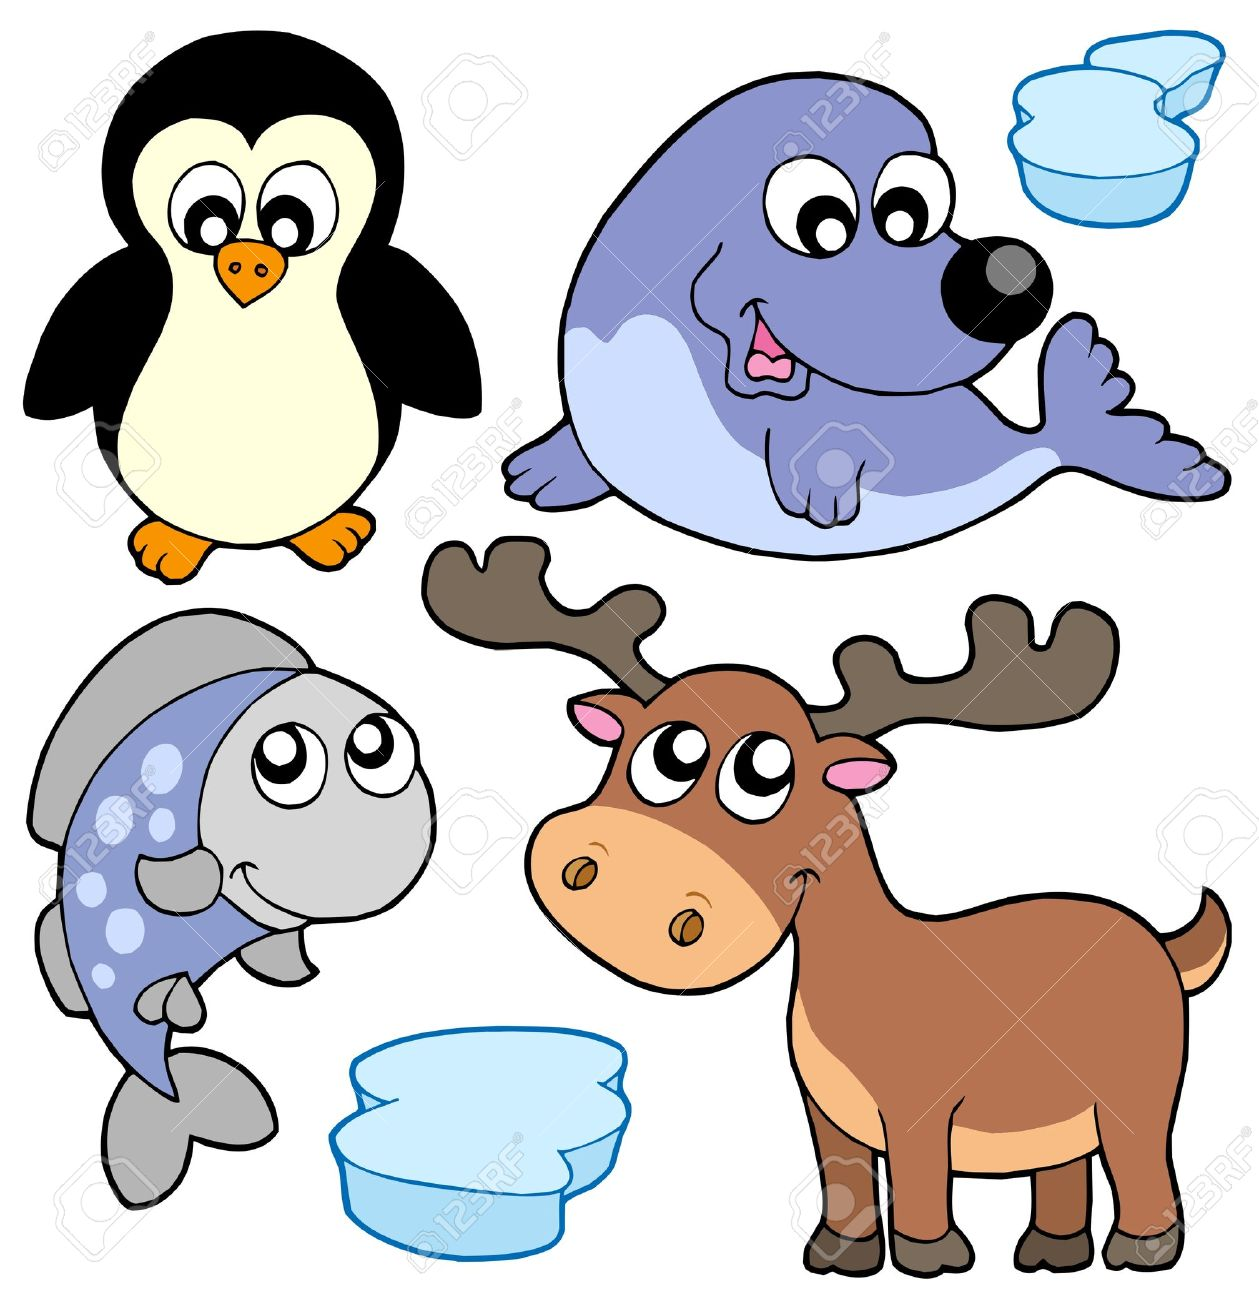 Cute winter animals.